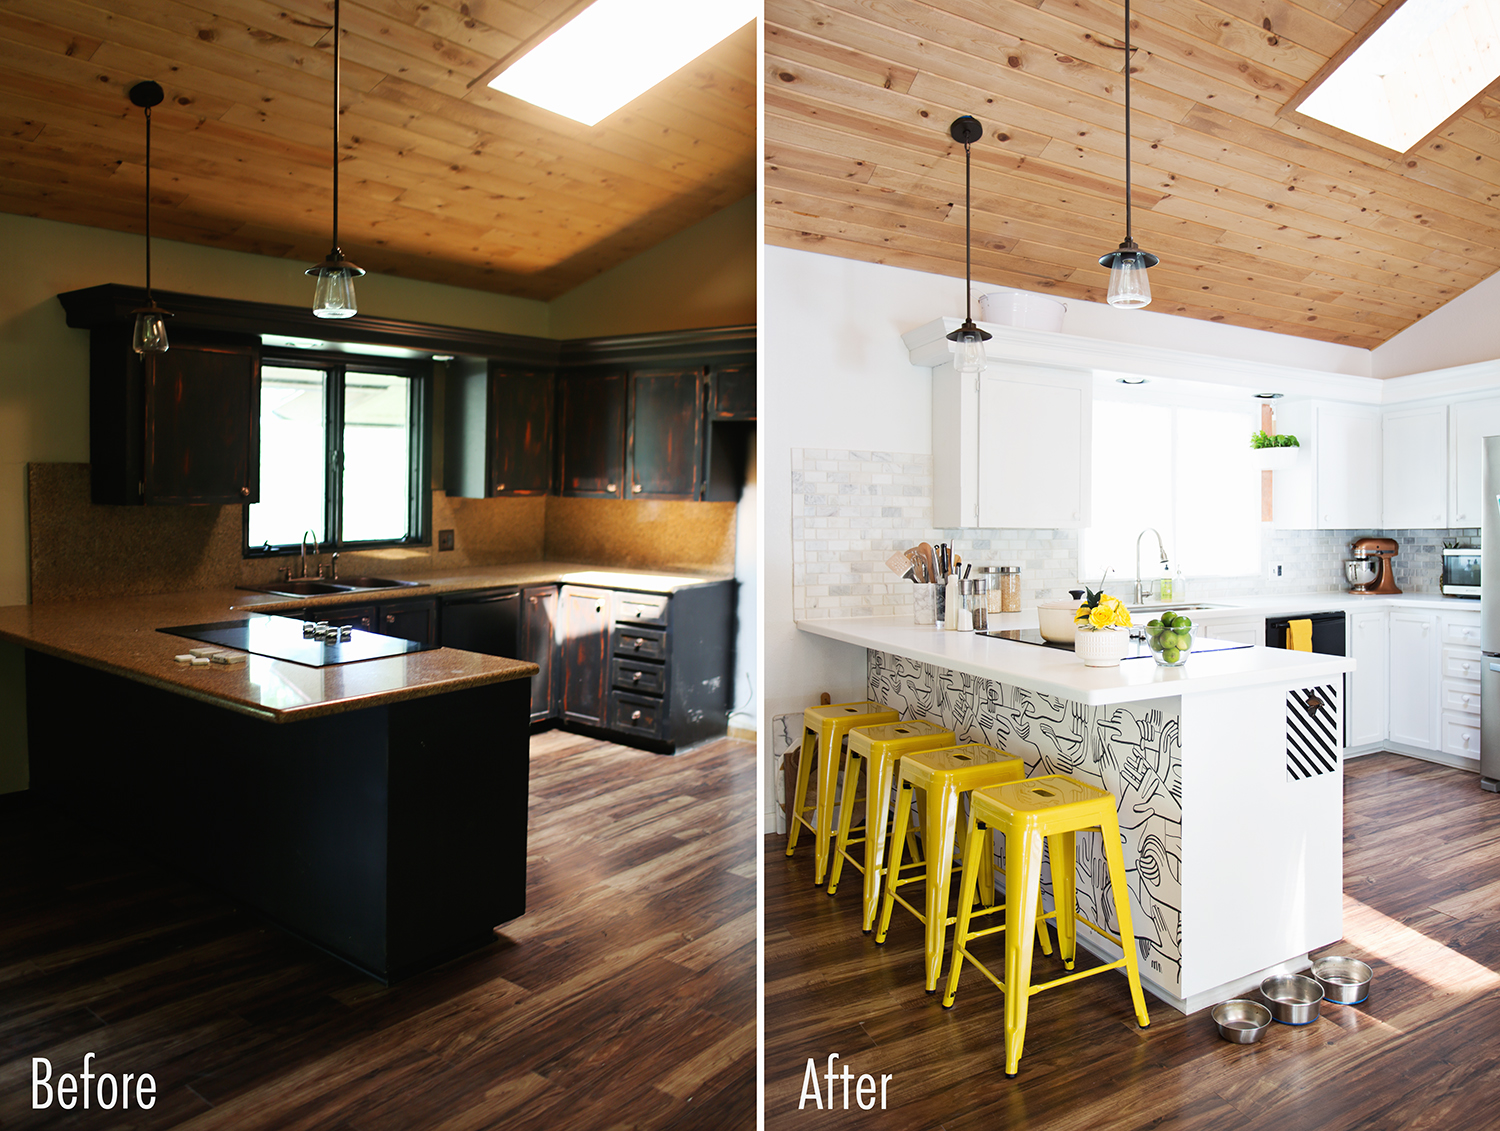 Emma's kitchen before and after